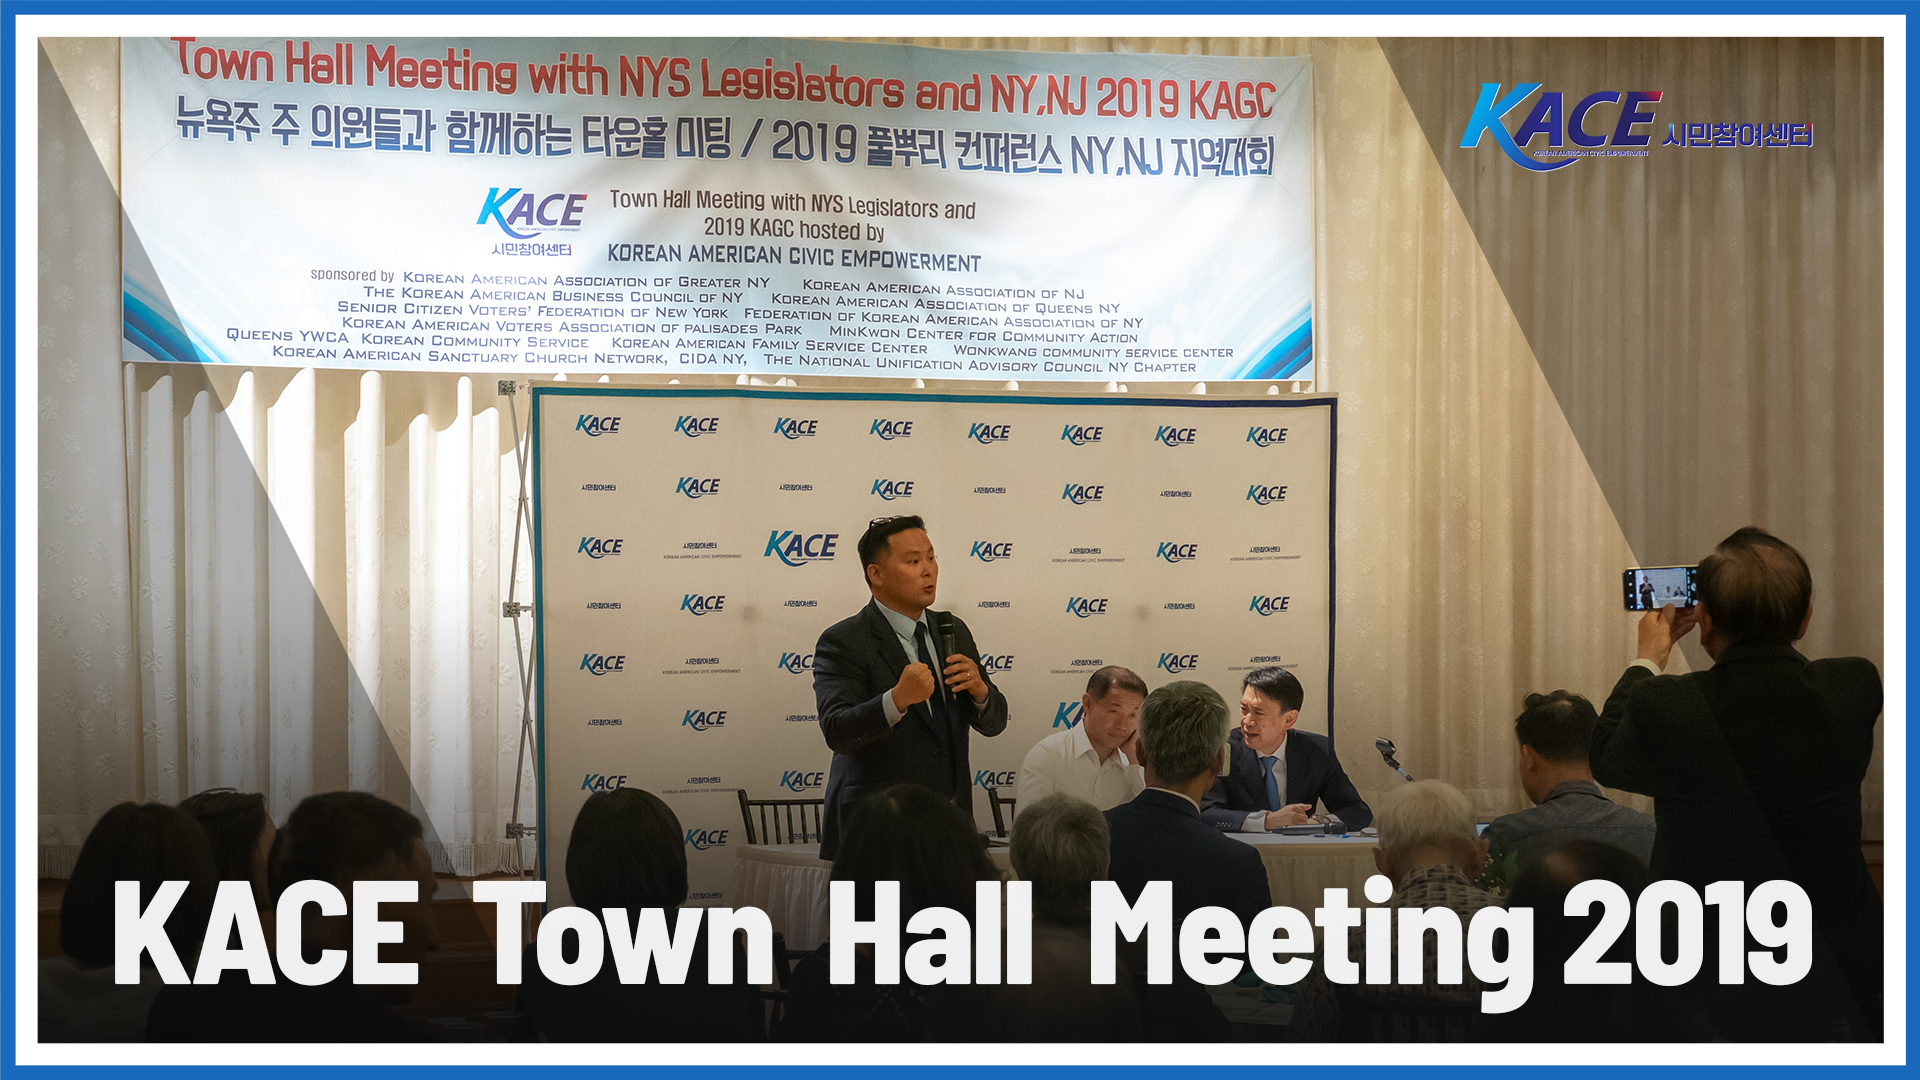 KACE Town Hall Meeting in NY